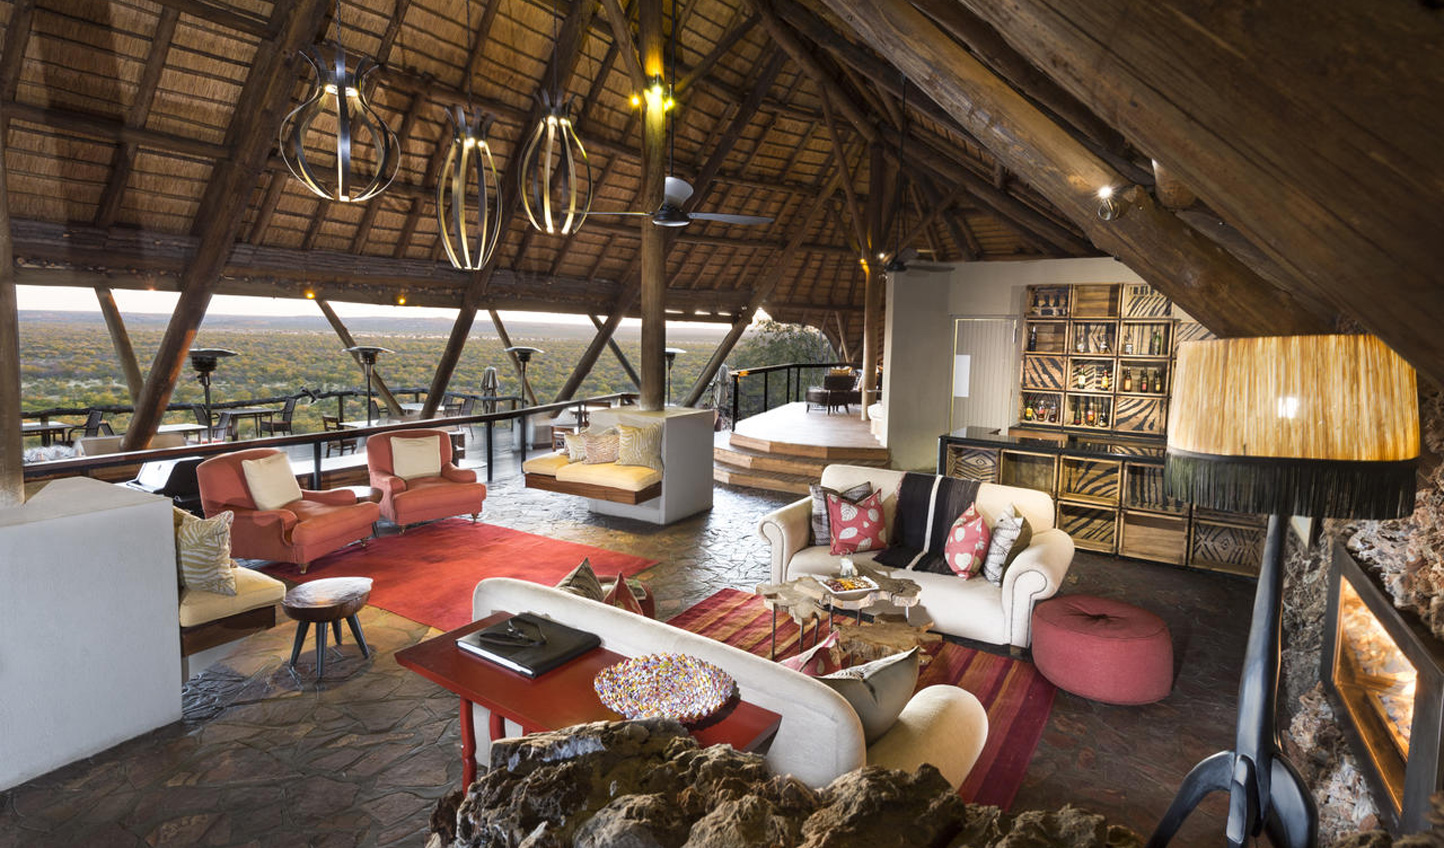 Relax in the main lodge taking in the far-reaching views of the reserve